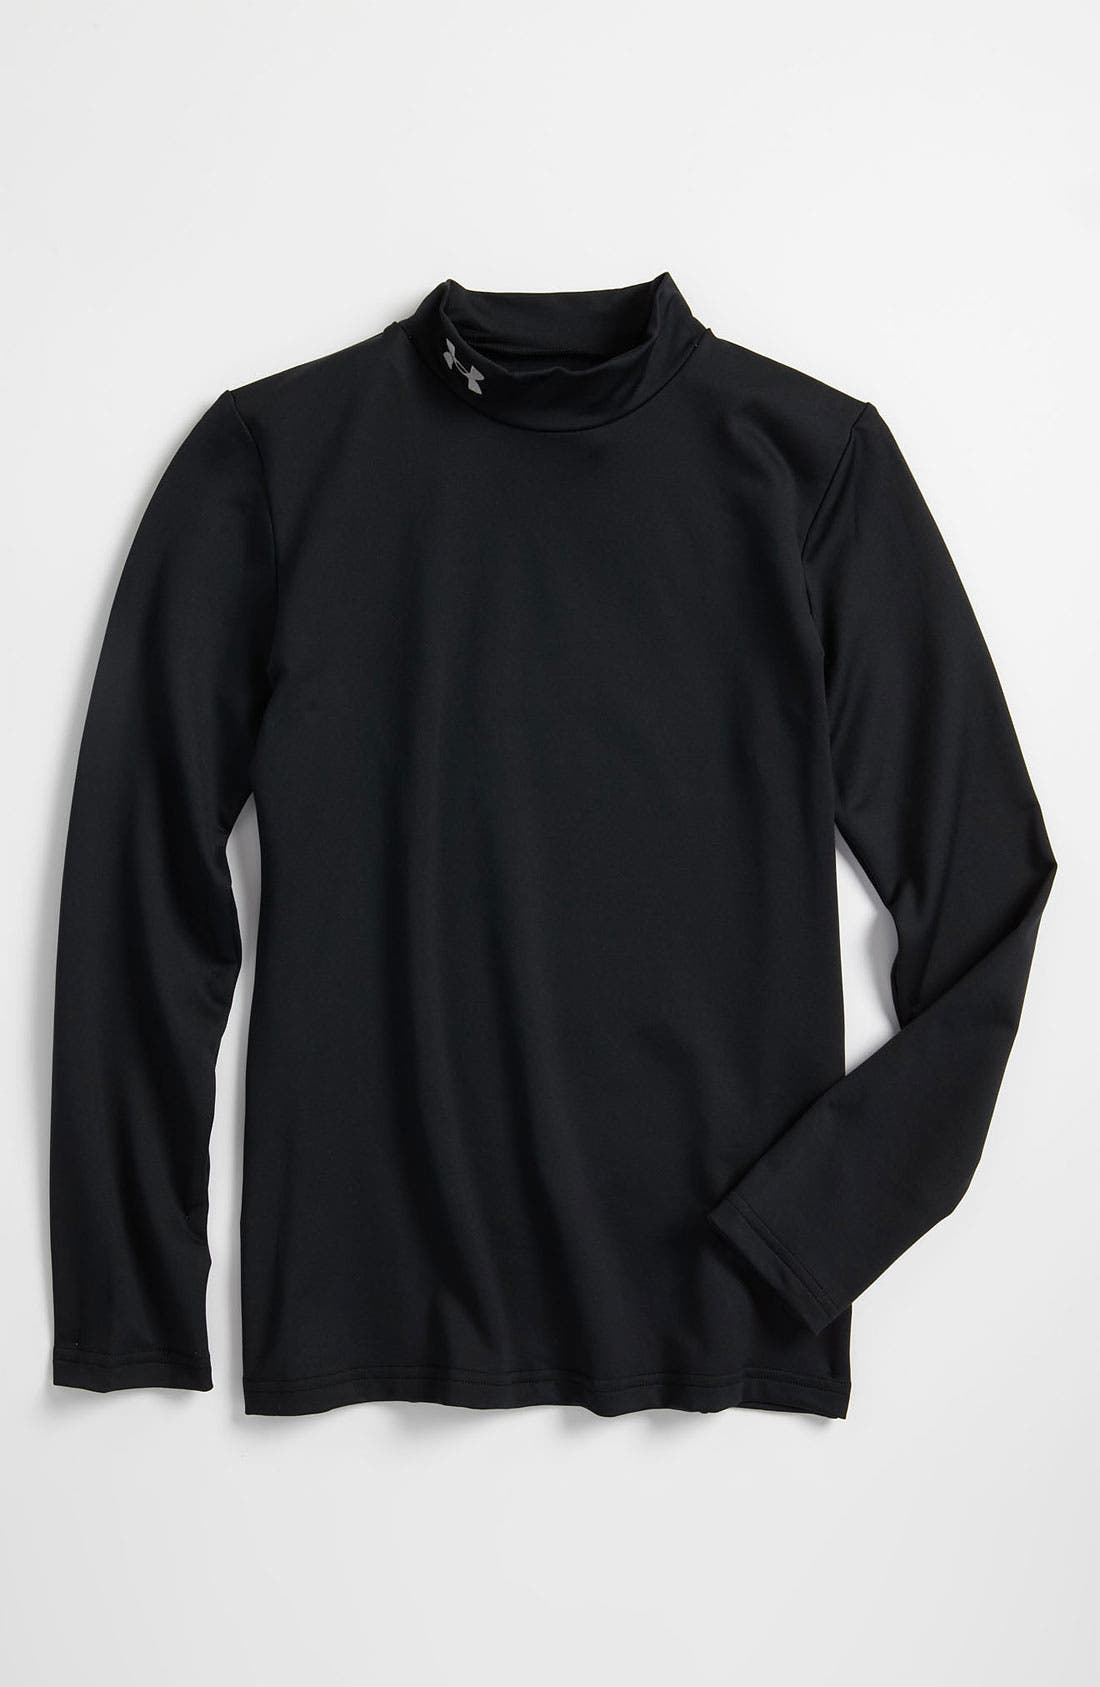 Alternate Image 1 Selected - Under Armour Fitted Top (Big Boys)